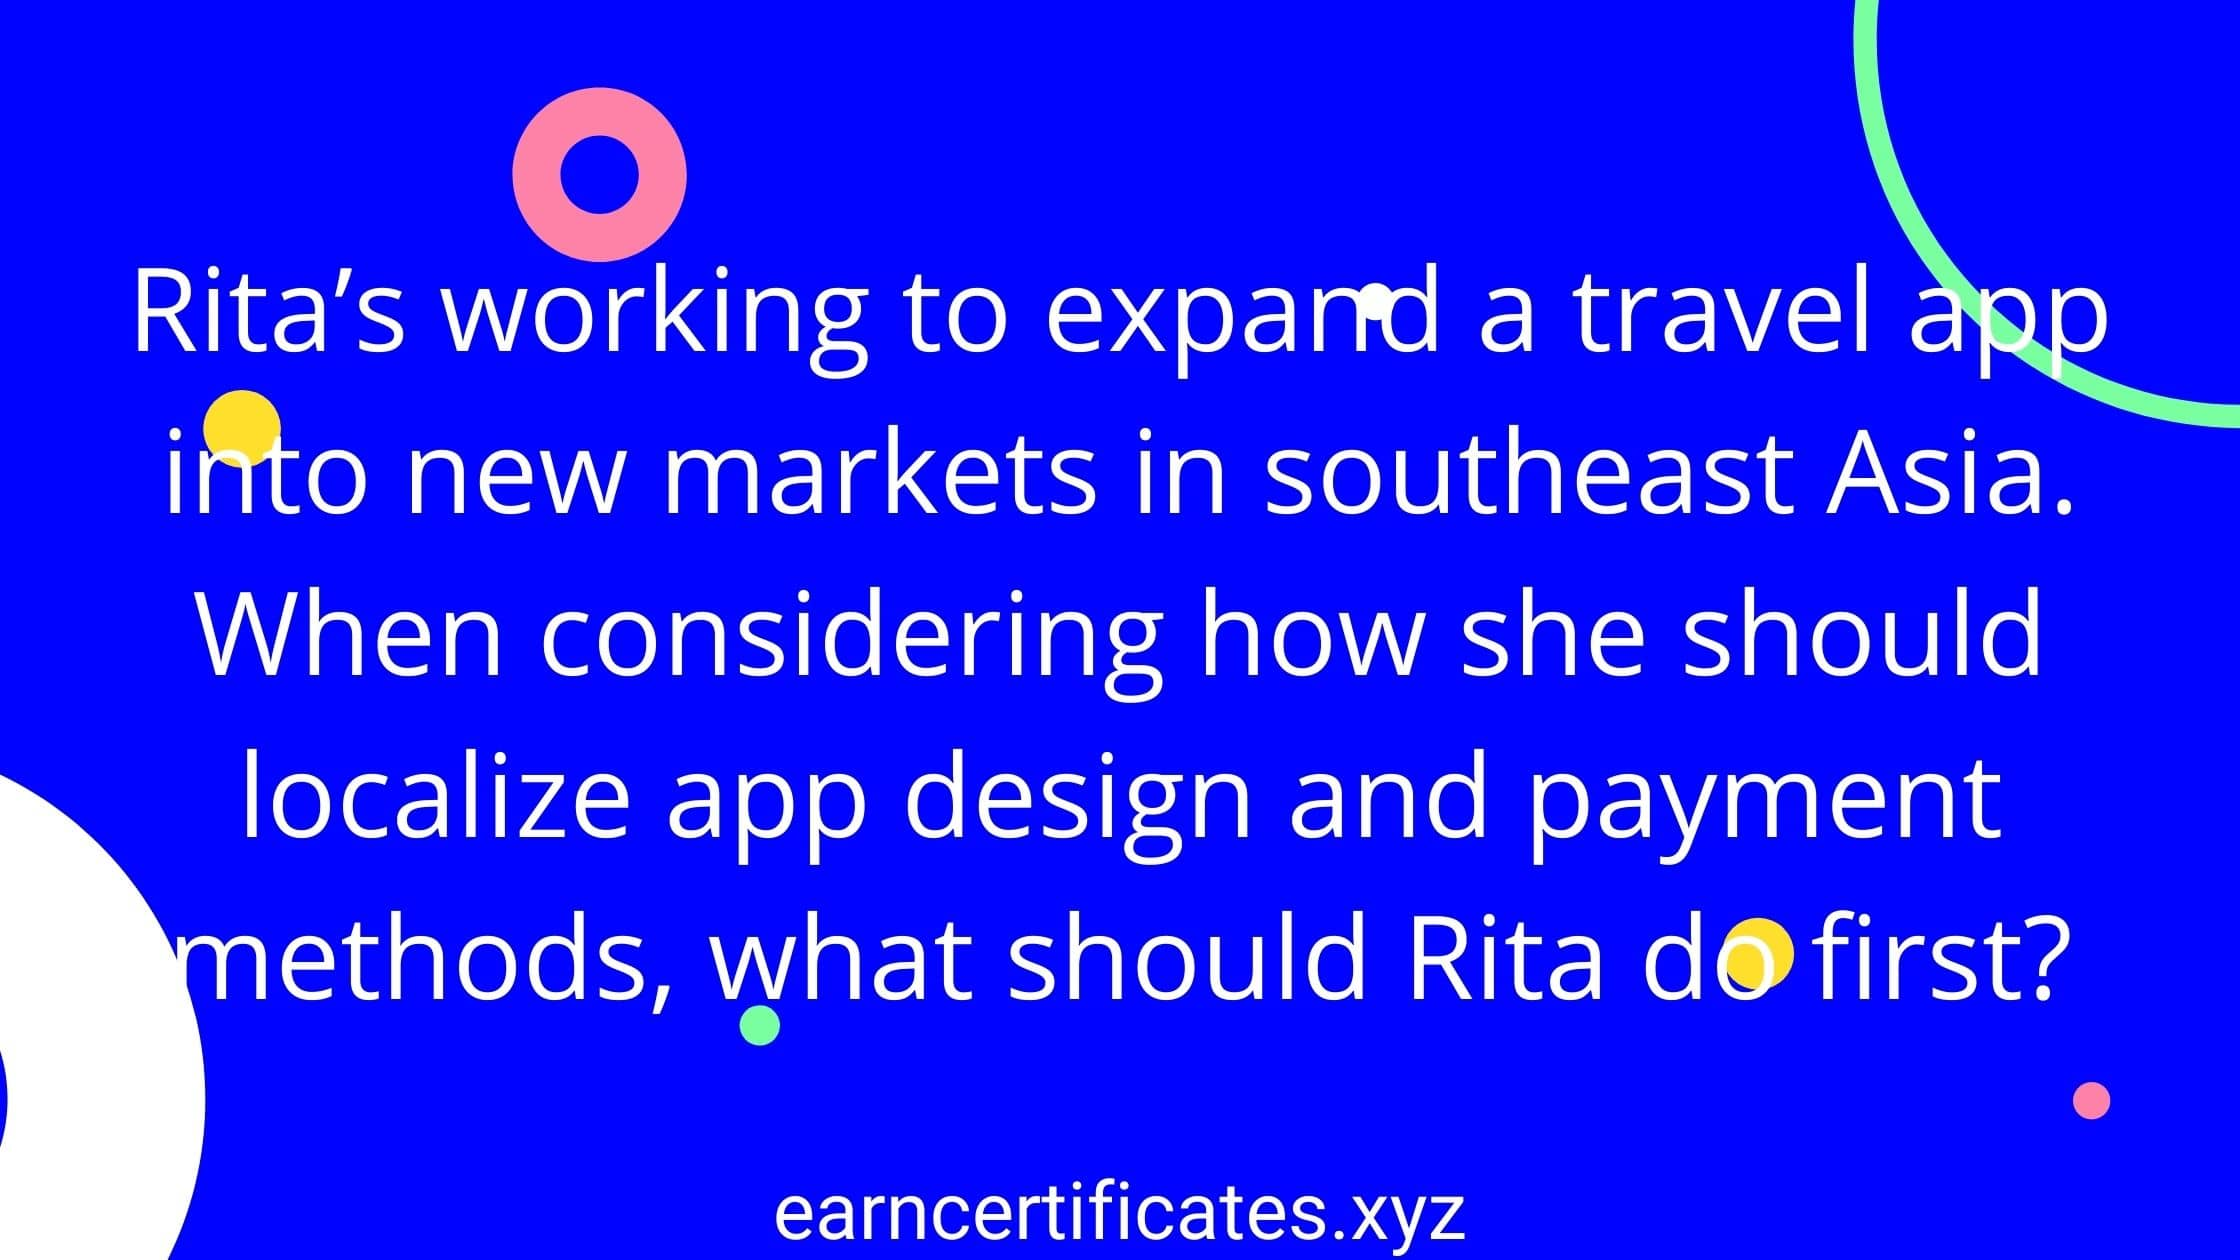 Rita's working to expand a travel app into new markets in southeast Asia. When considering how she should localize app design and payment methods, what should Rita do first?